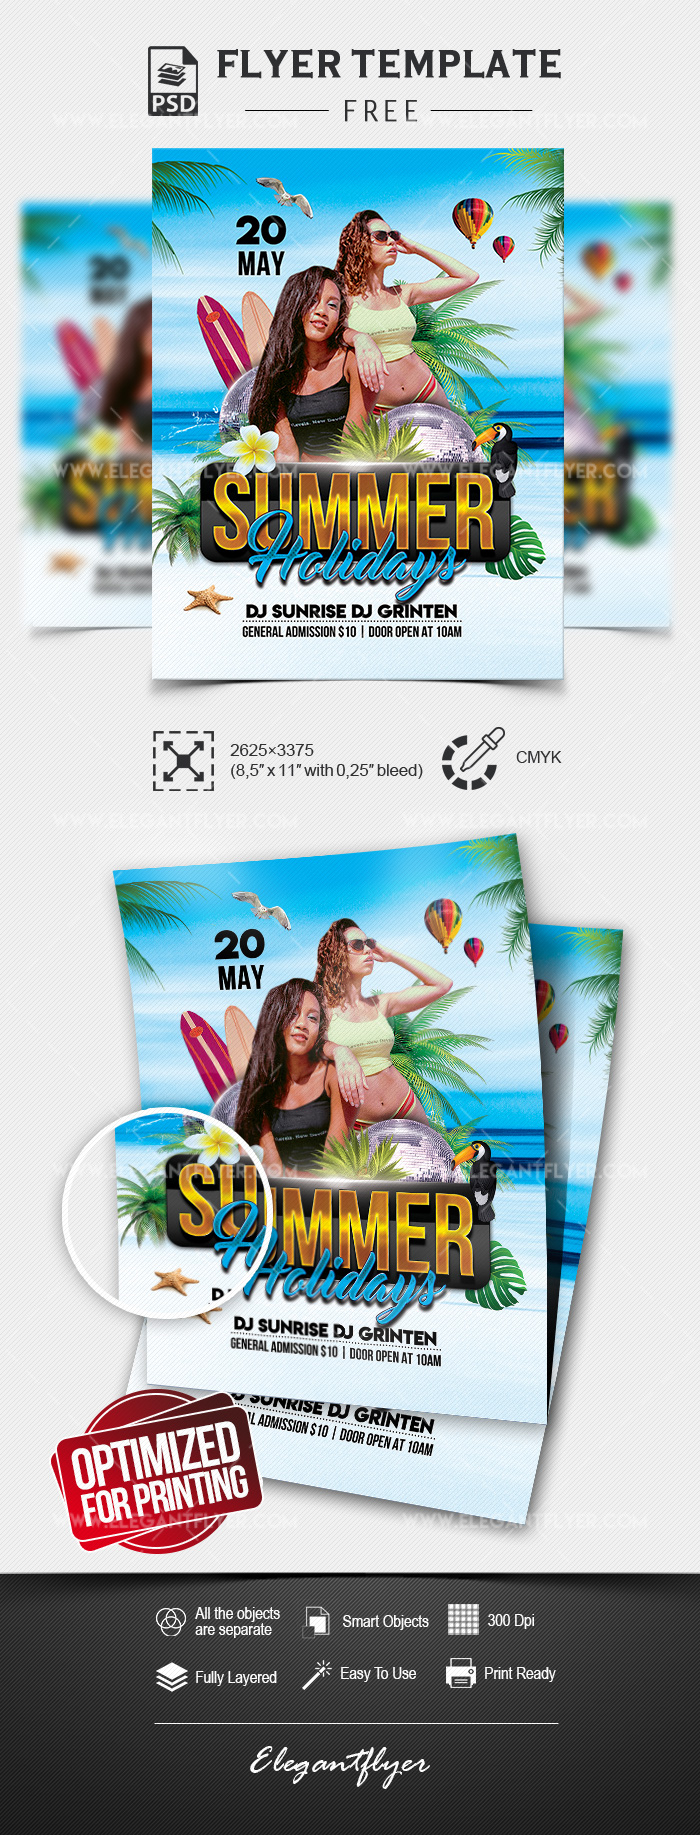 Summer Holidays – Free Flyer Template in PSD